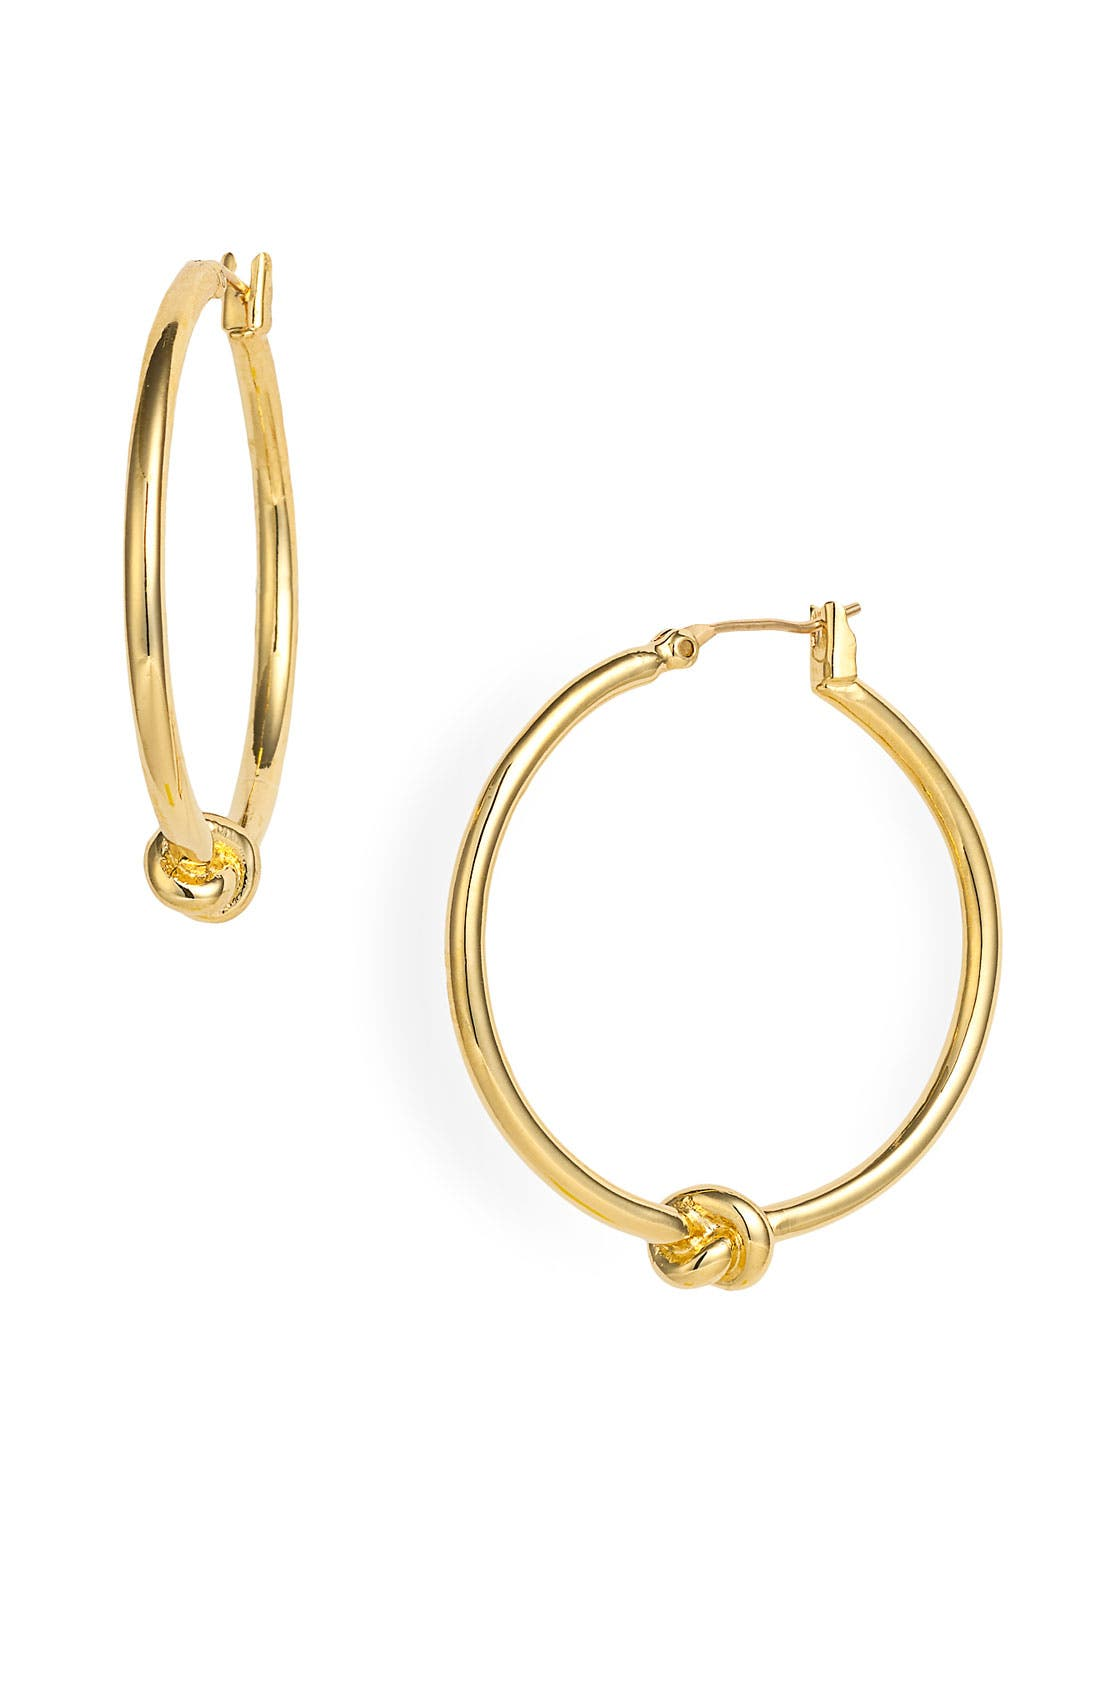 Main Image - kate spade new york 'sailors knot' hoop earrings